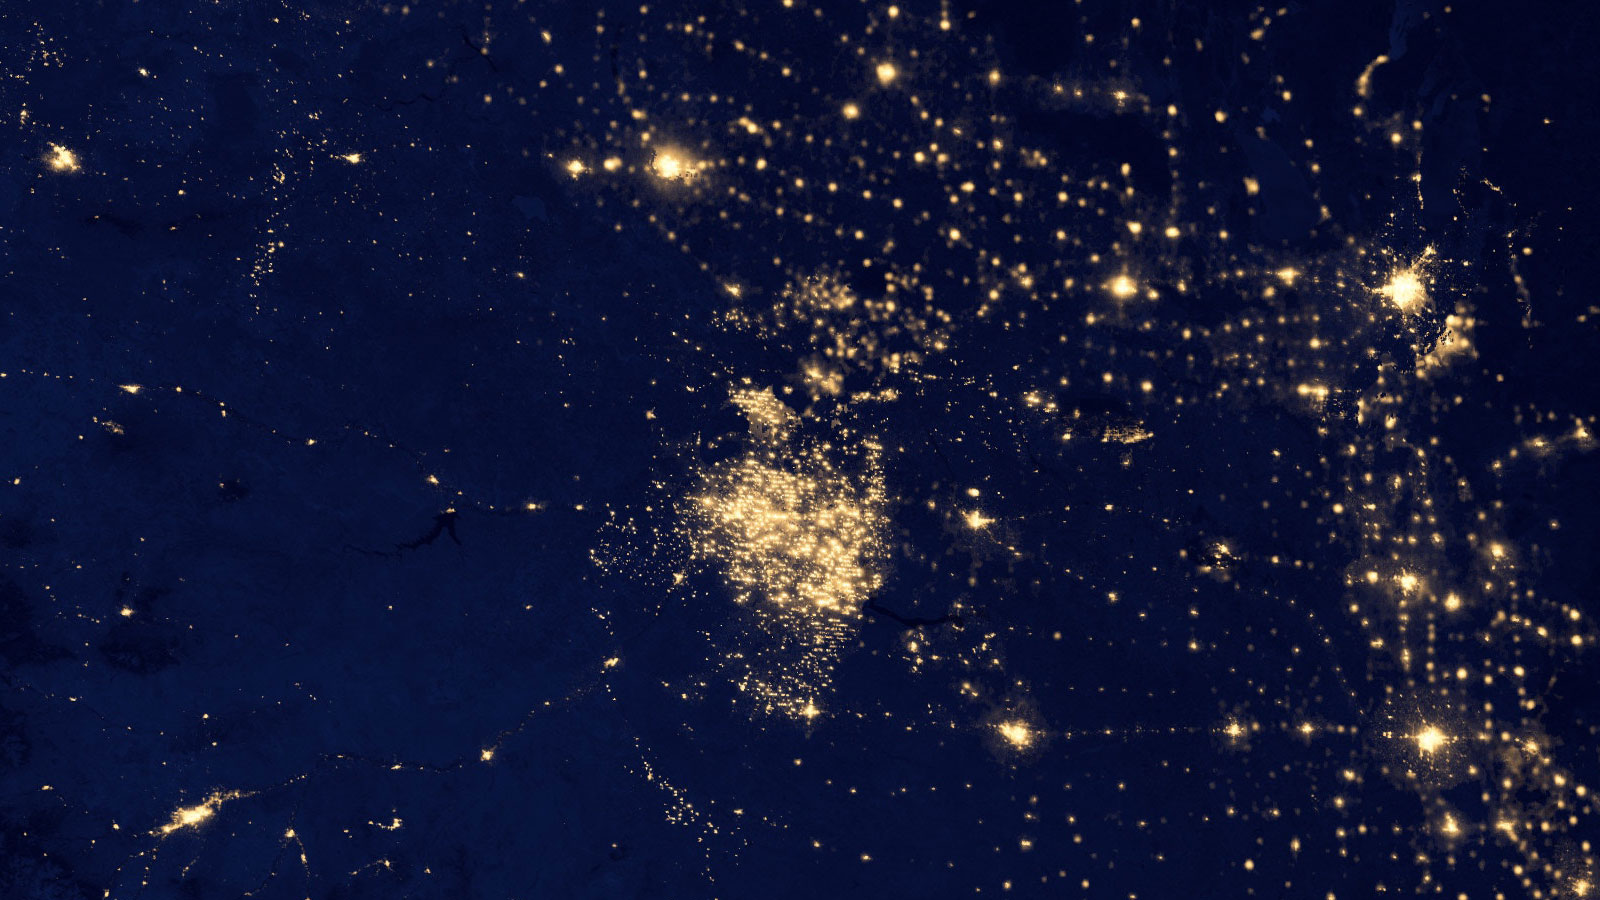 Images of Lights from Space